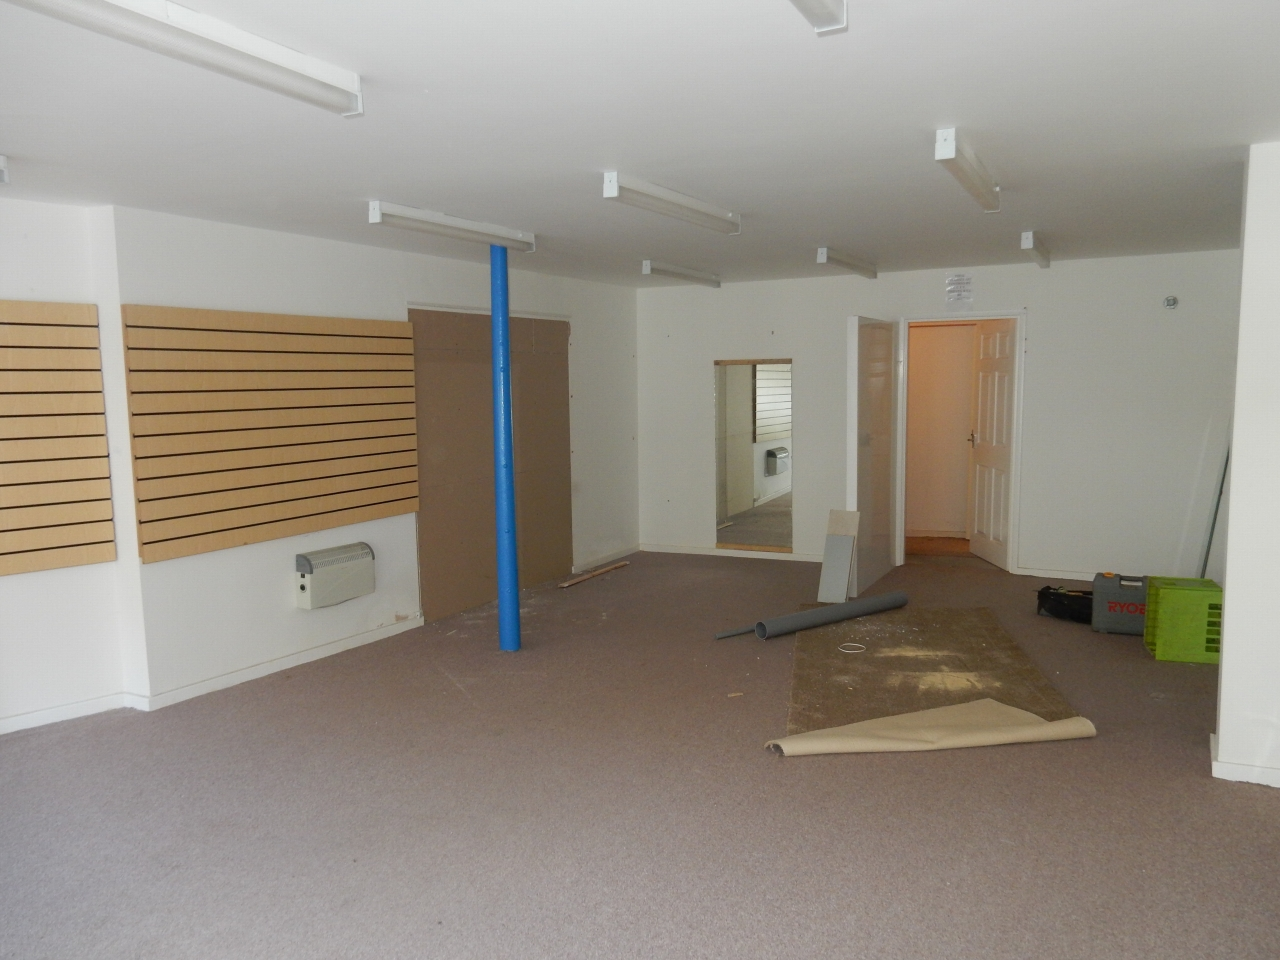 Shop Let Agreed in Crook - Photograph 3.